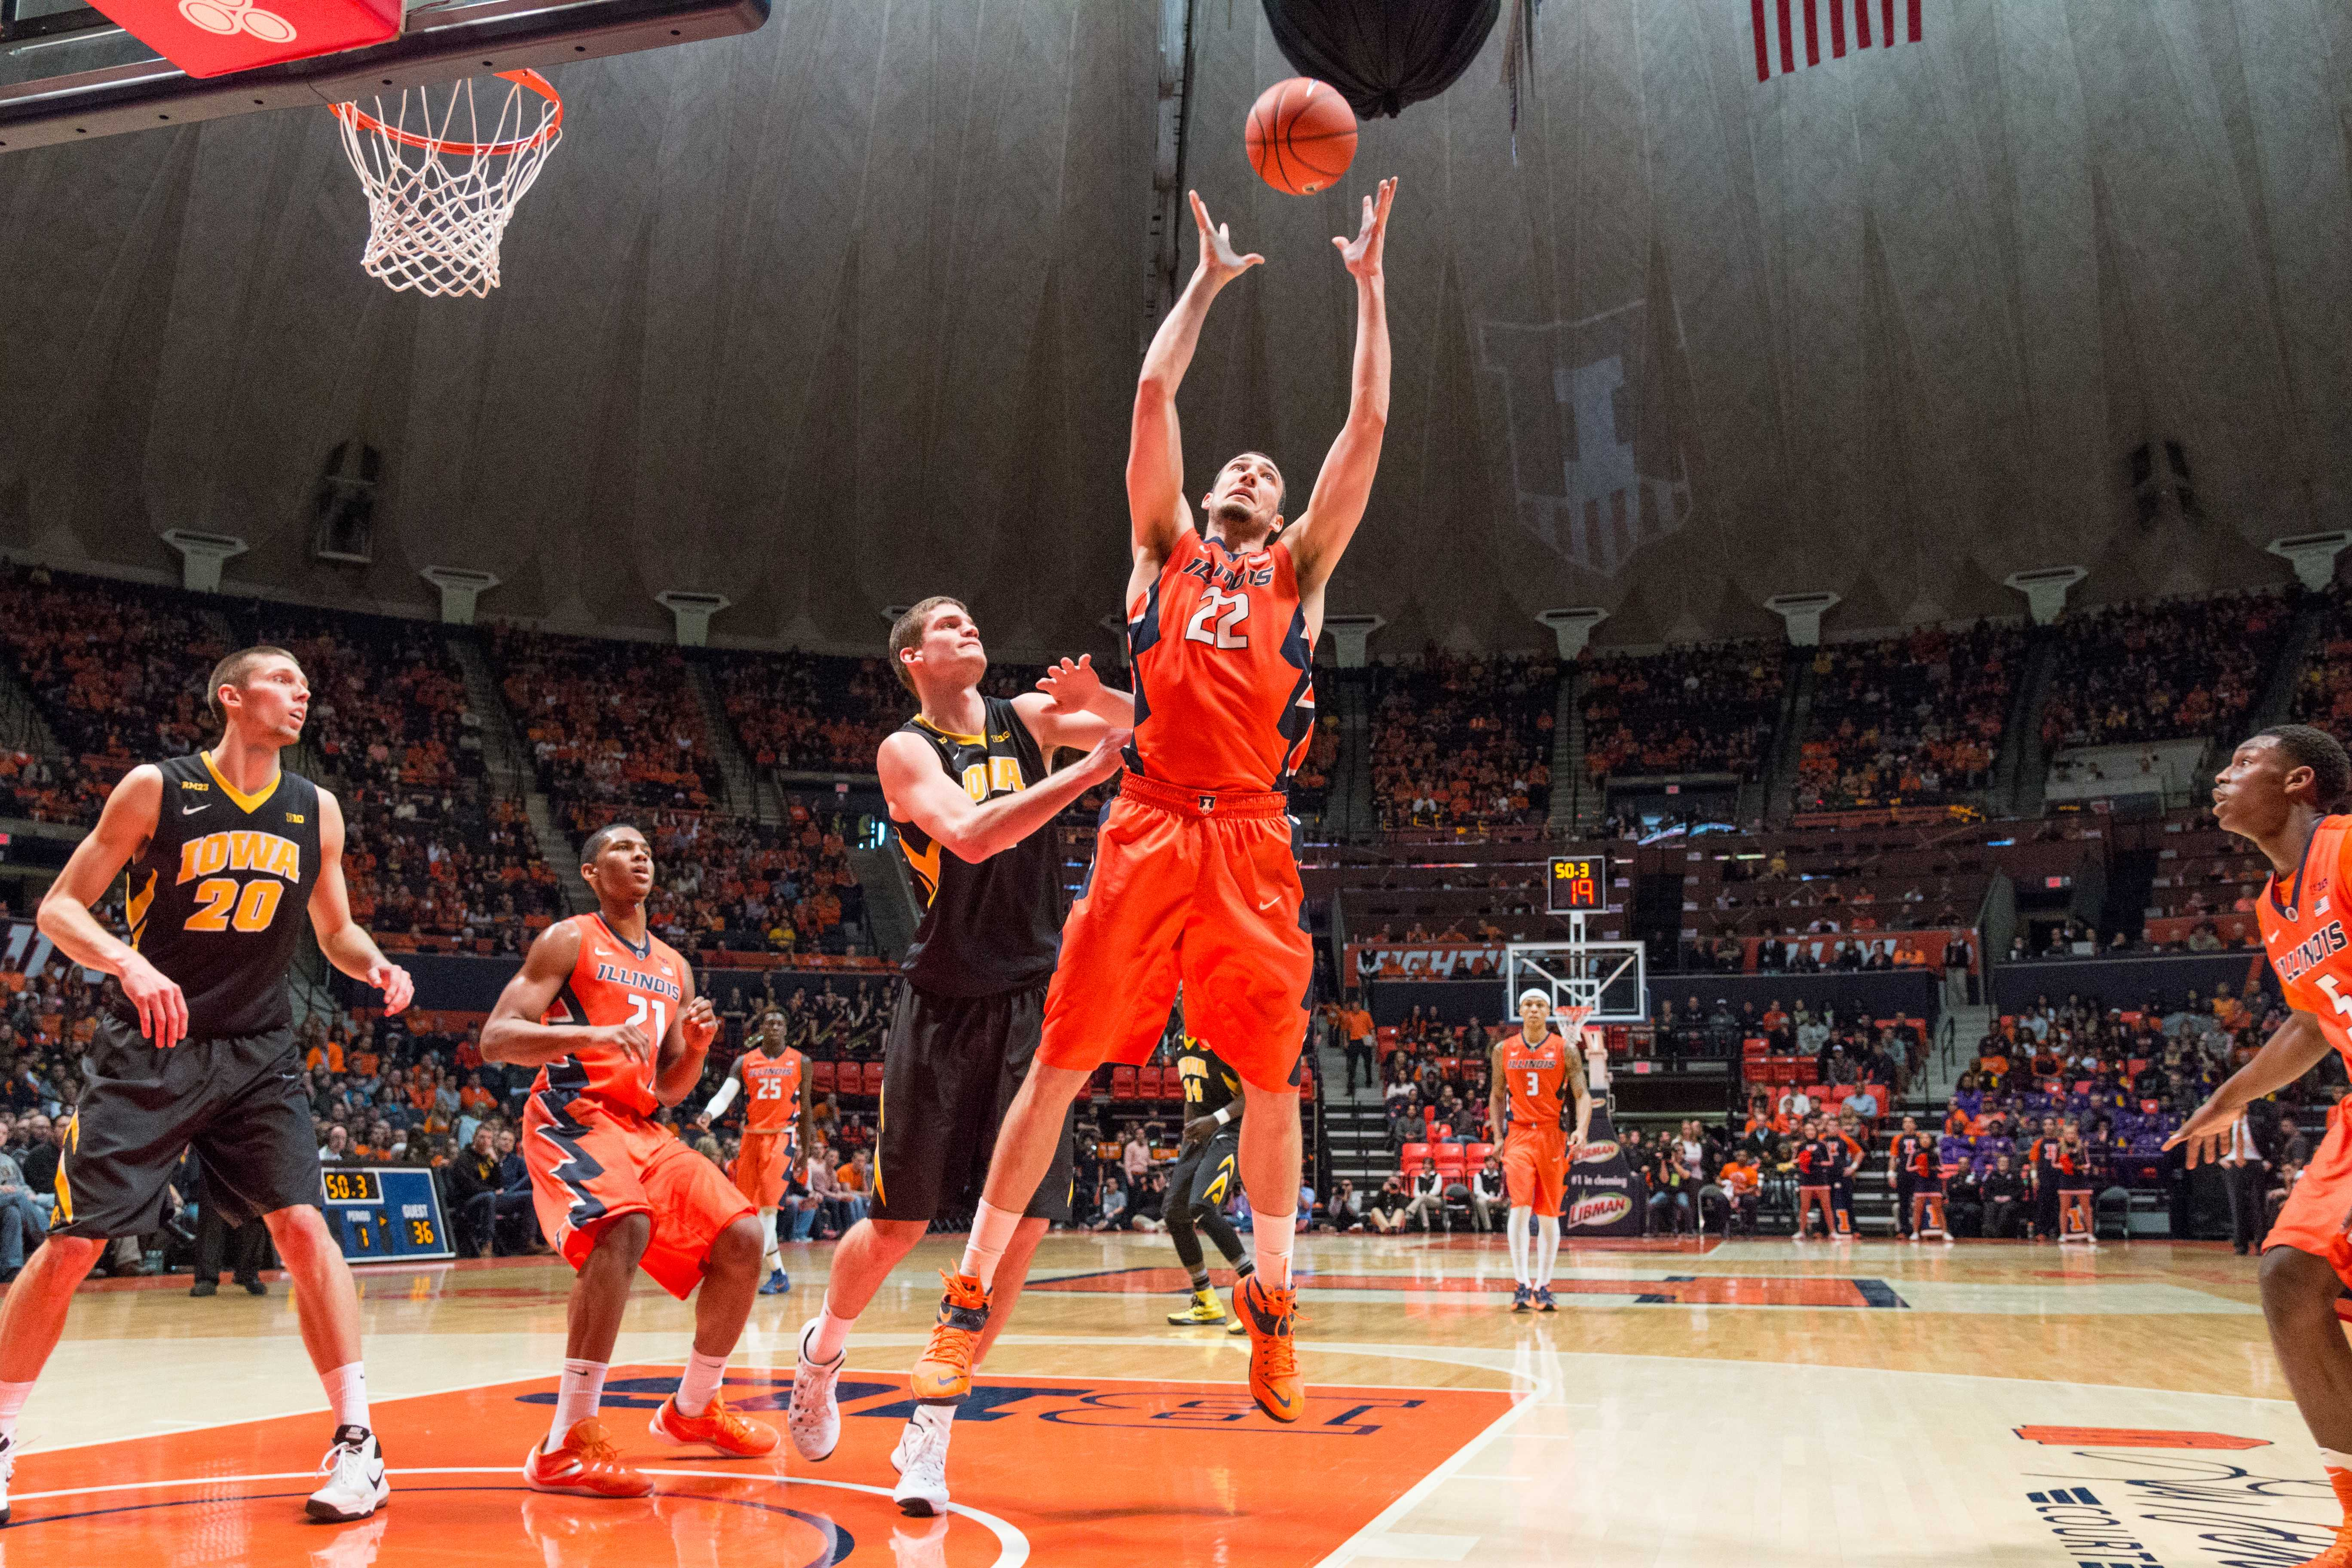 Illinois' Maverick Morgan grabs a rebound during the game against Iowa at the State Farm Center on February 7. The Illini lost 77-65.